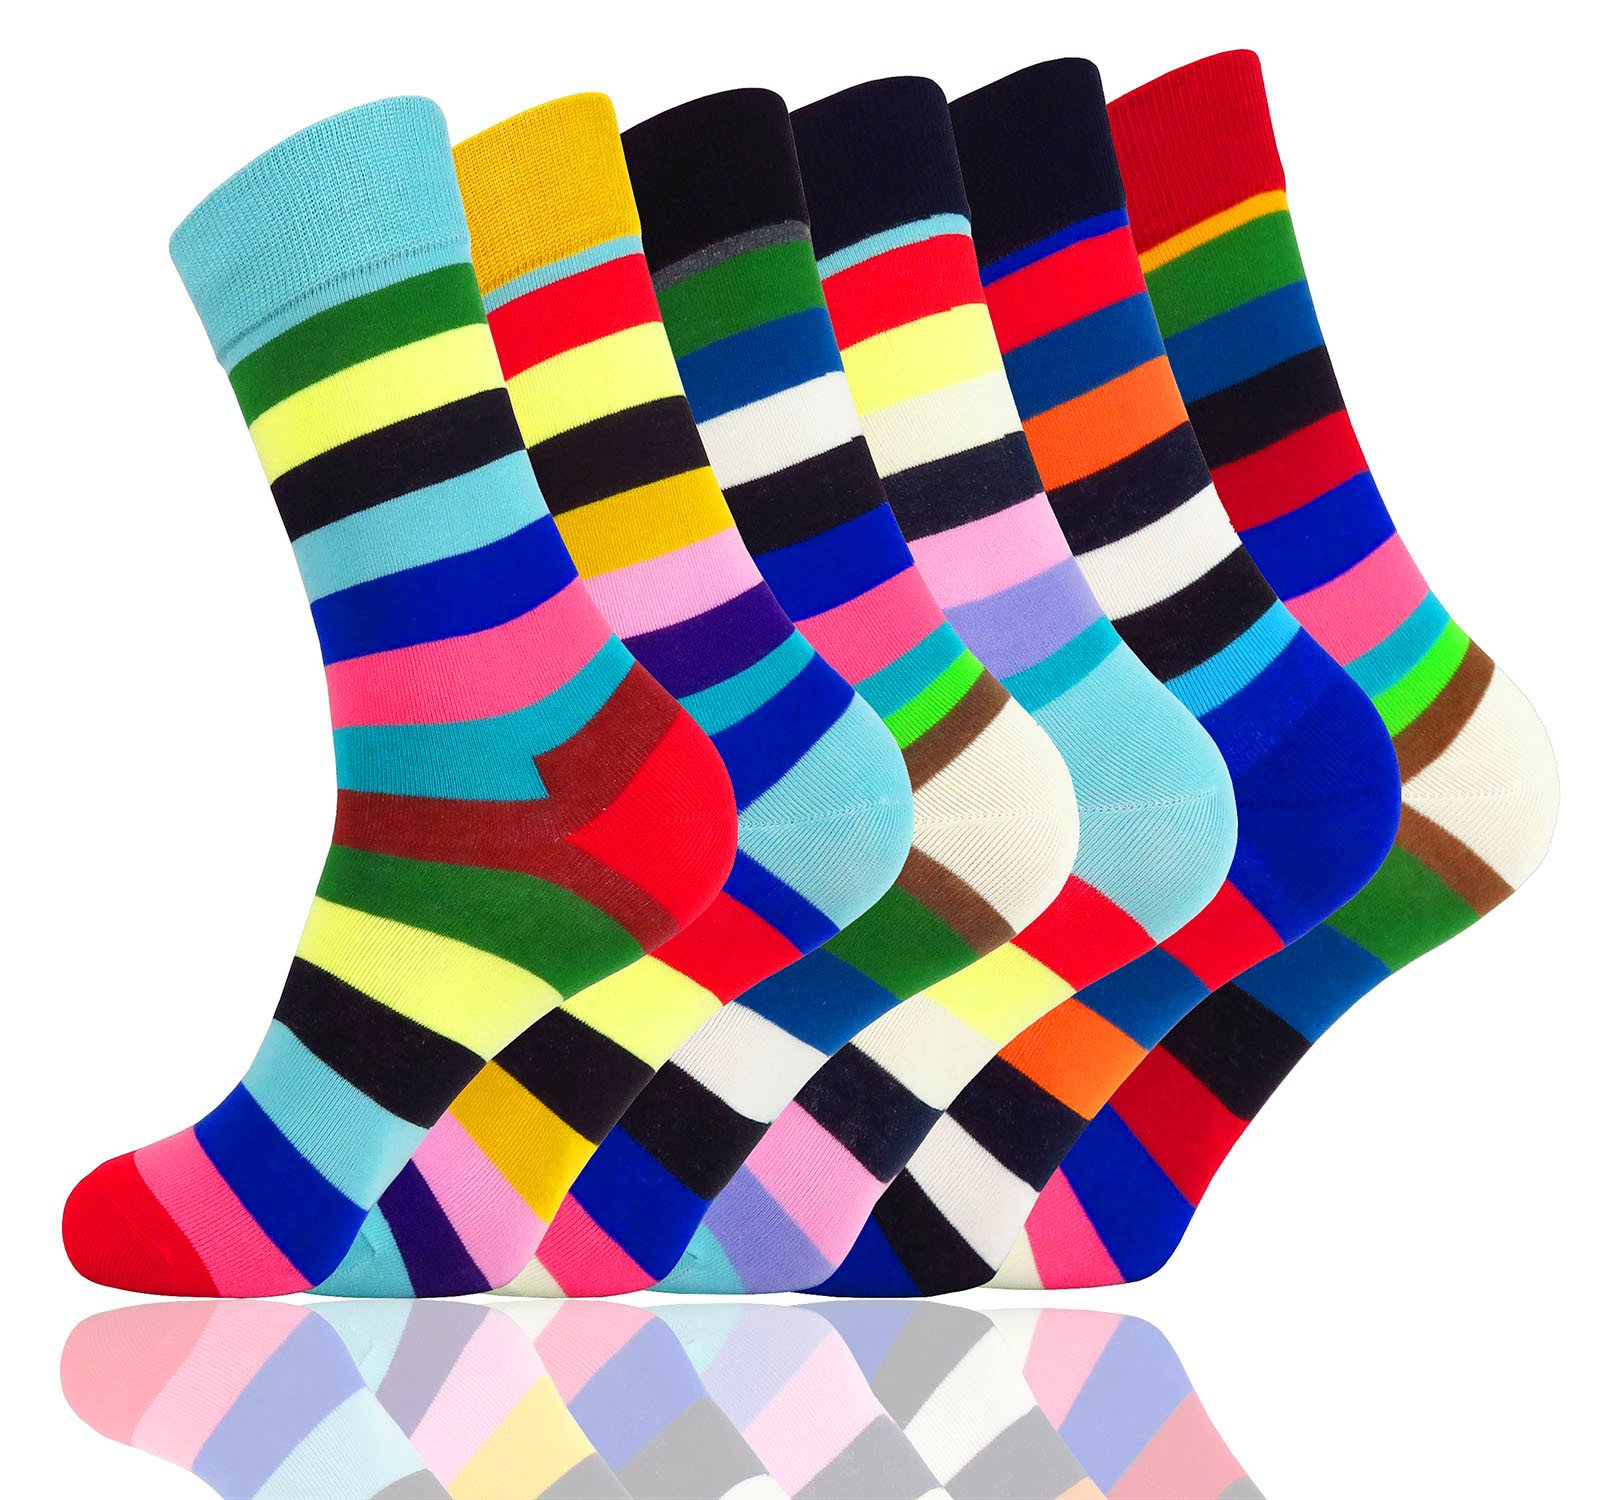 WEILAI SOCKS Men's 6 Pack Design Multicolored Stripe Print Pattern Cotton Casual Crew Dress Socks